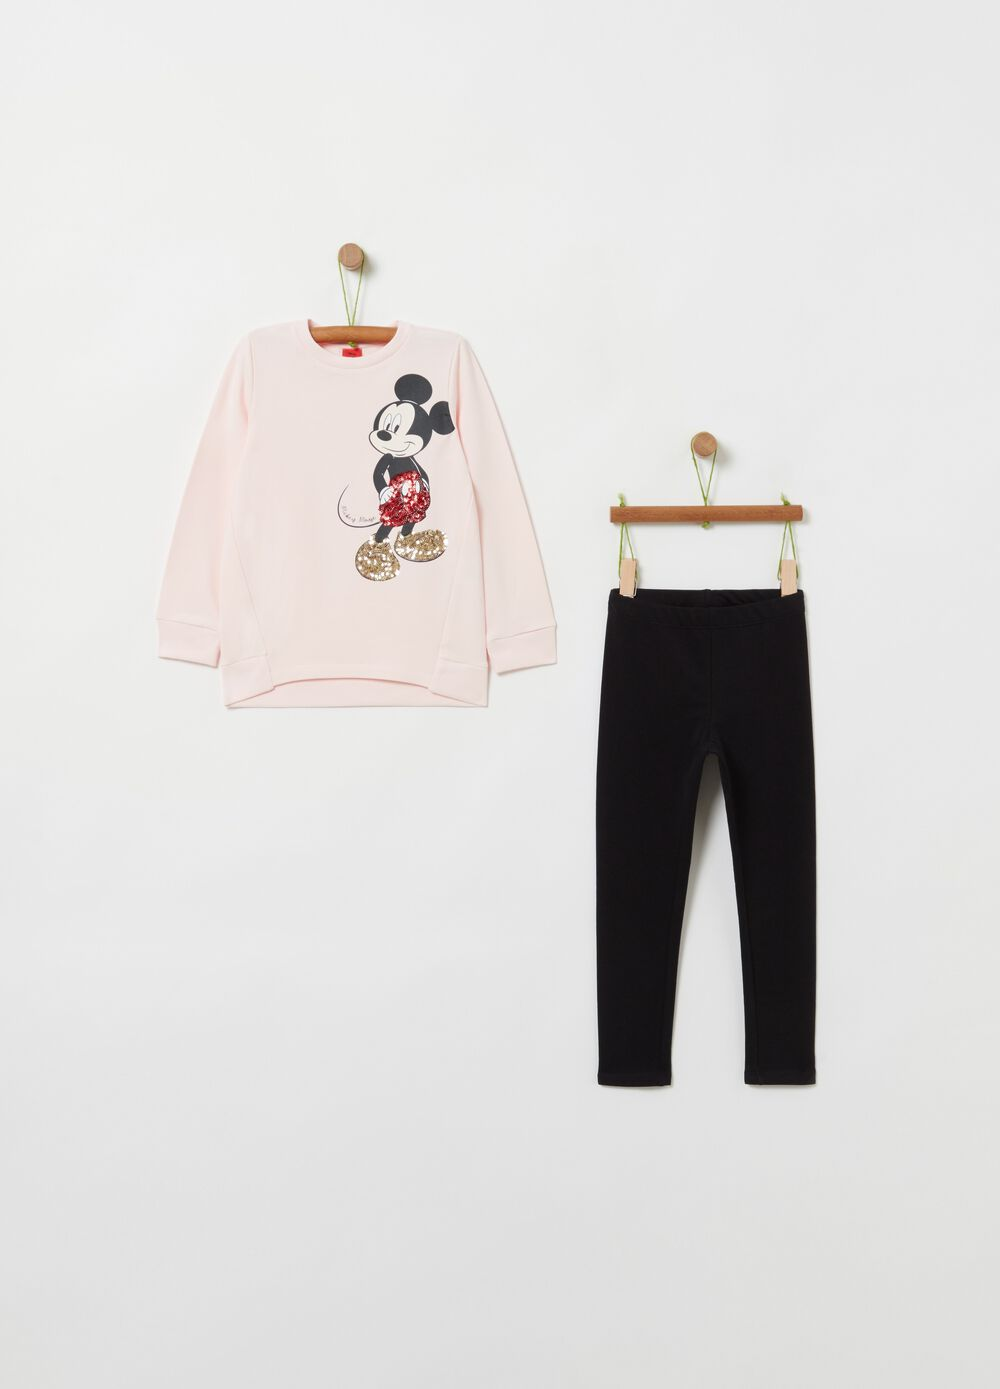 Jogging set with Mickey Mouse print